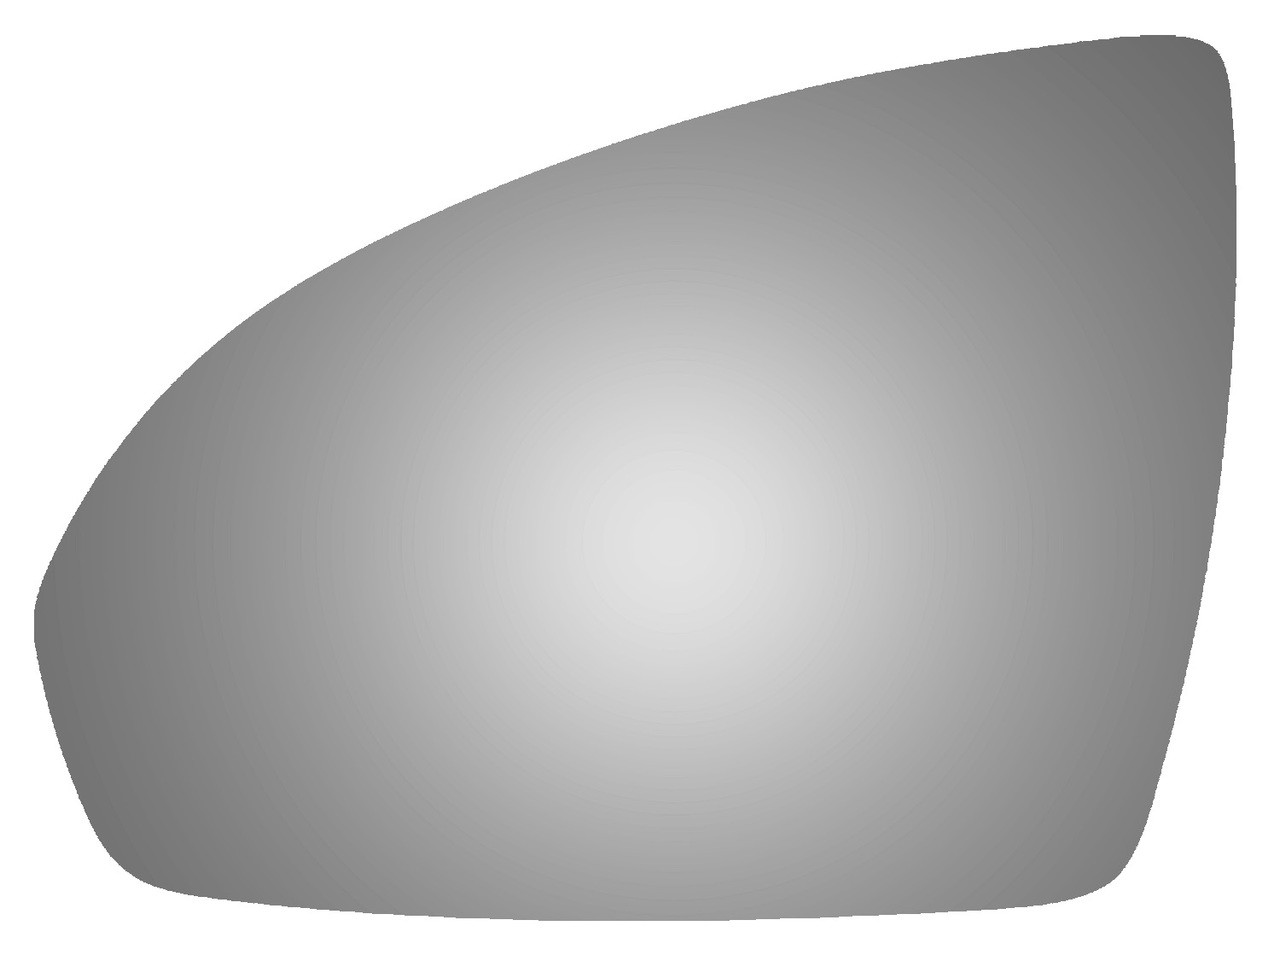 2015 SMART FORTWO Driver Side Mirror Glass - 4464